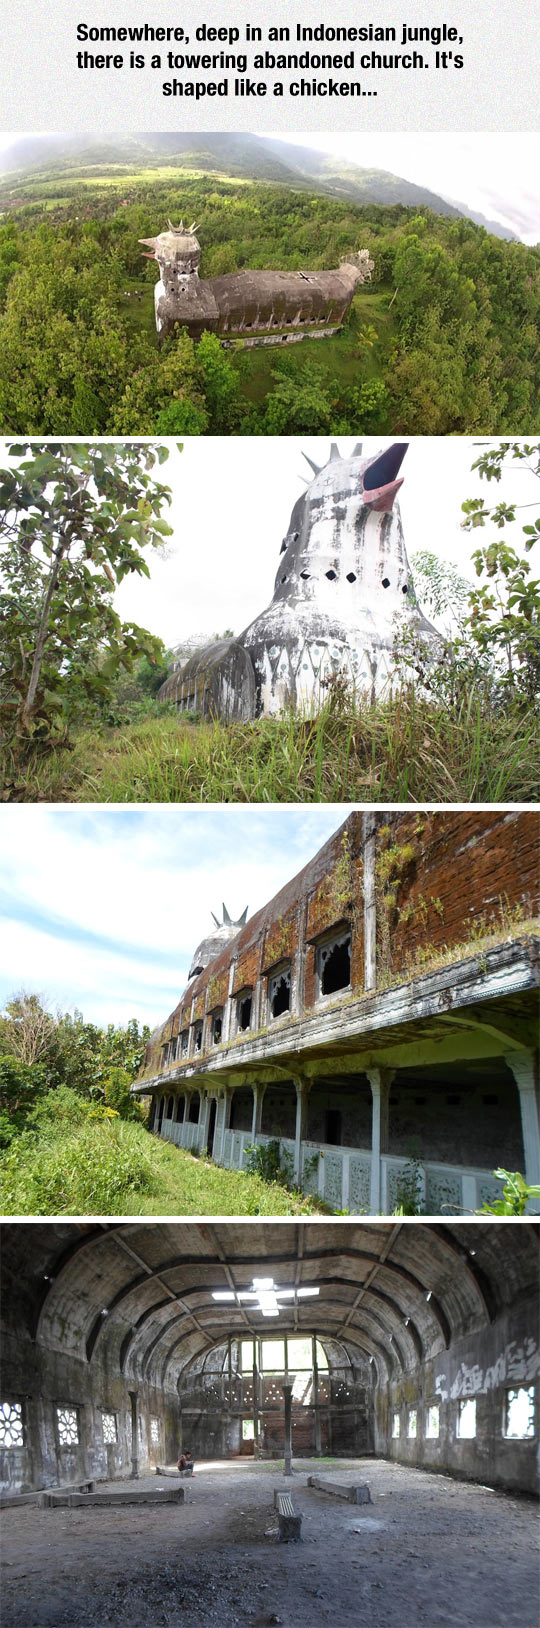 1cool-church-indonesian-jungle-chicken-shape